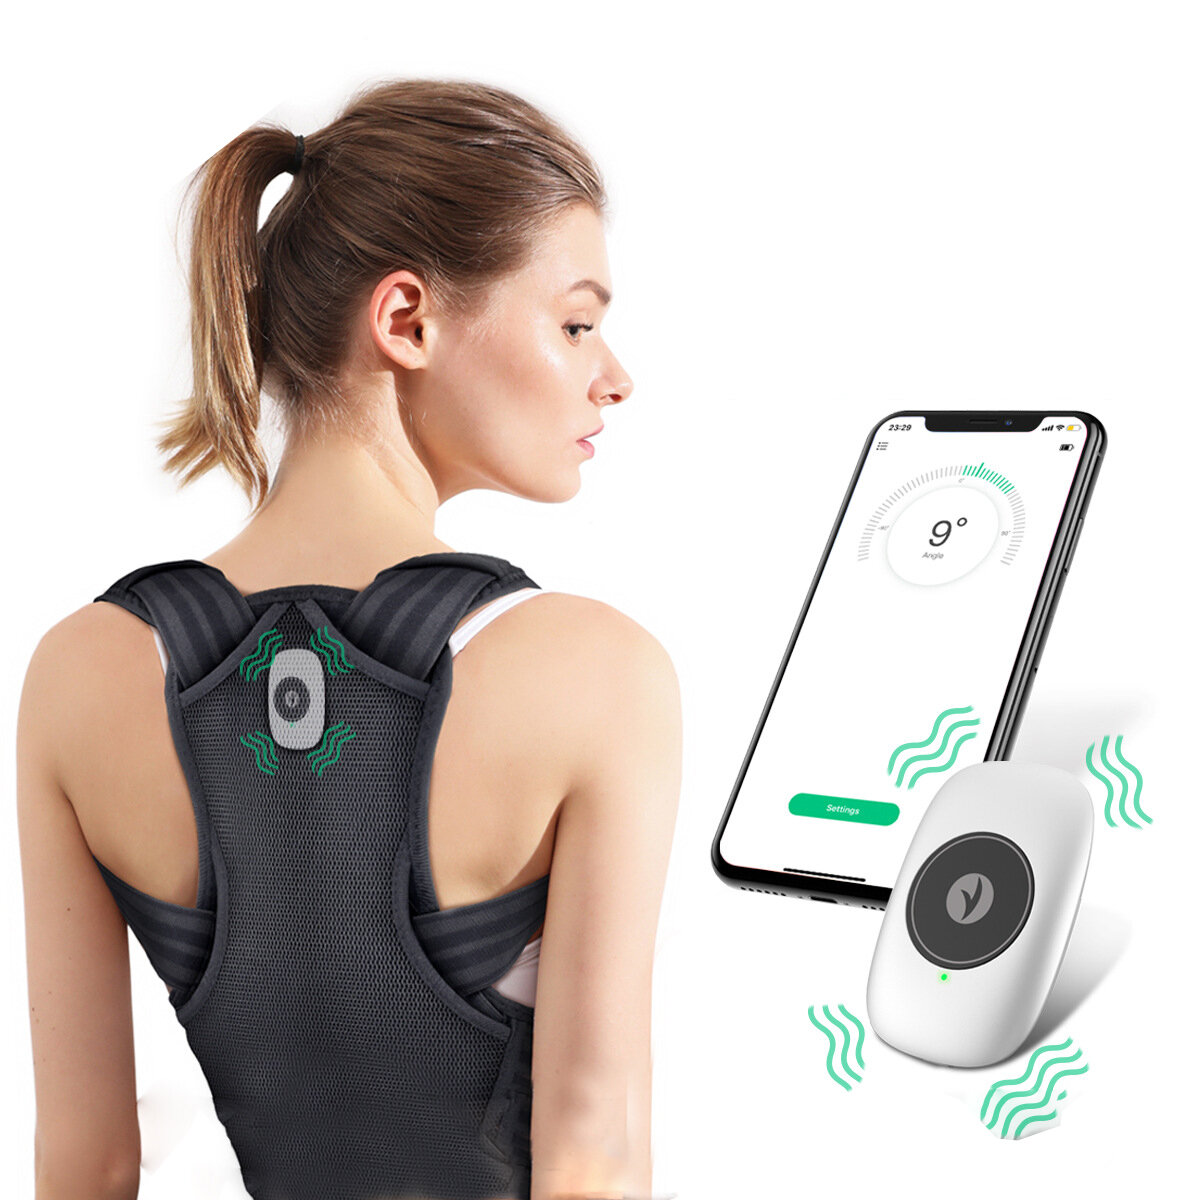 Smart korektor postawy KALOAD Back Trainer Posture za $43.76 / ~161zł